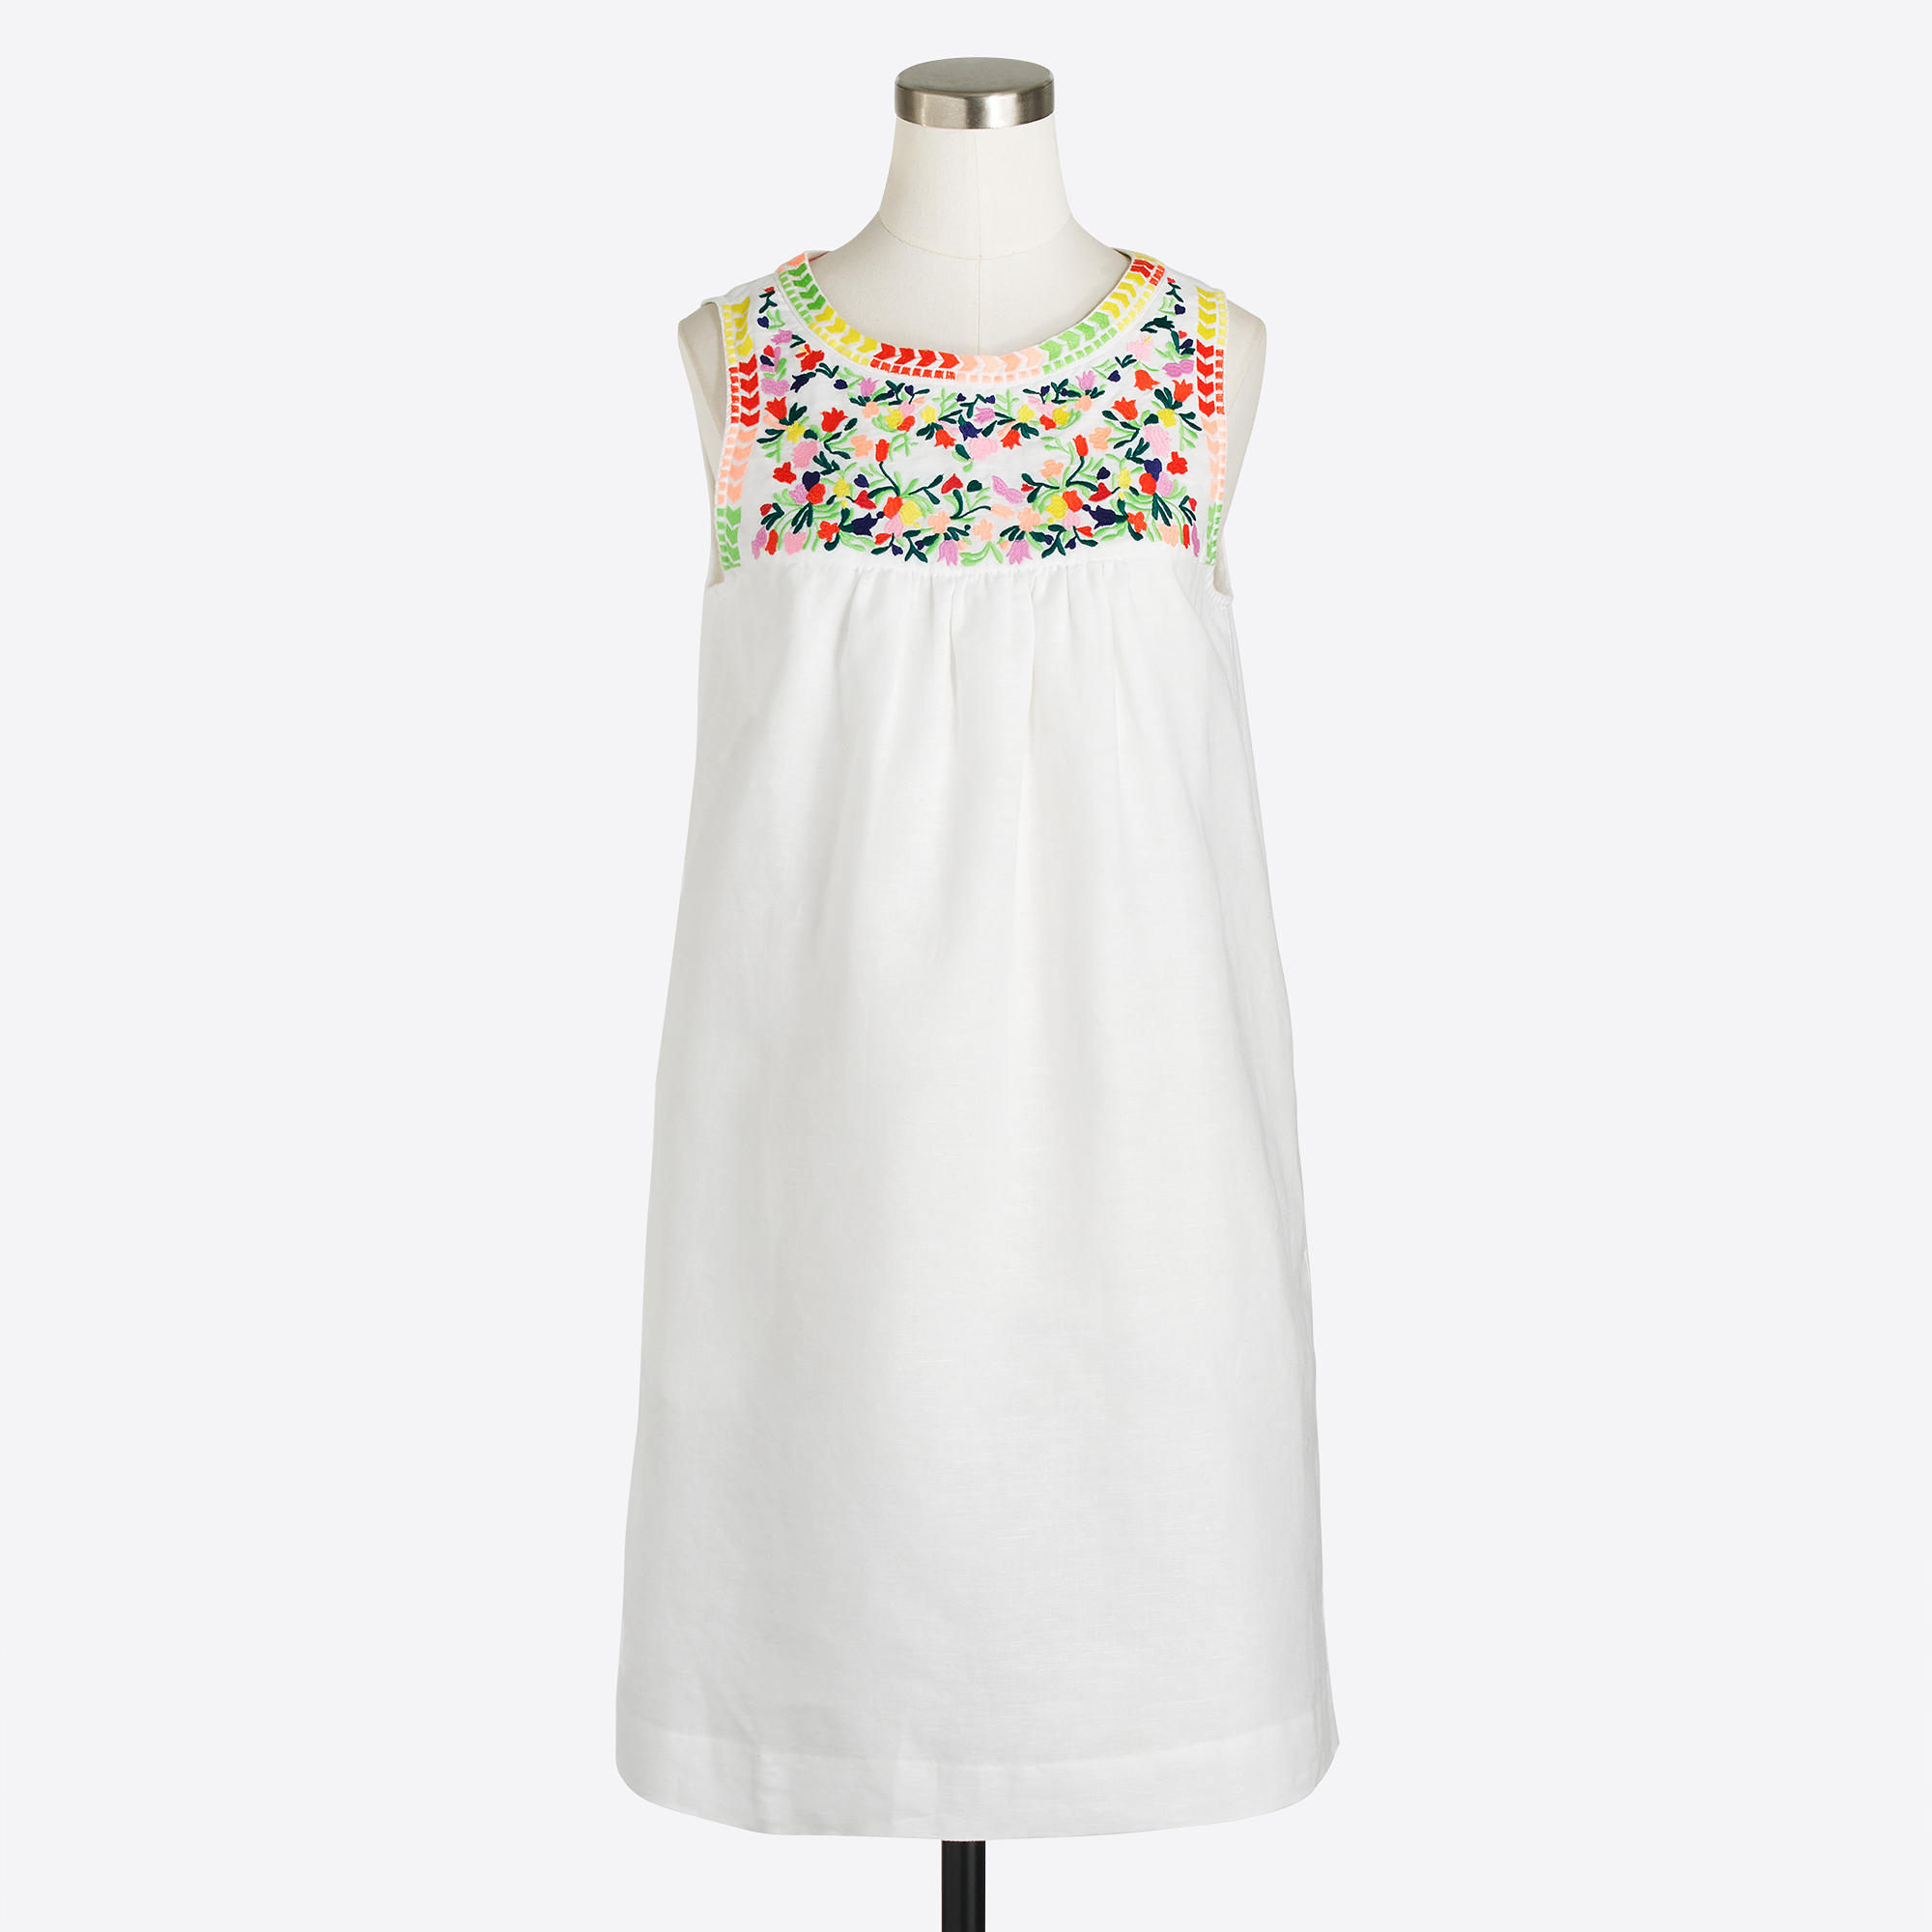 Embroidered dress factorywomen casual factory embroidered dress embroidered dress embroidered dress embroidered dress ccuart Images